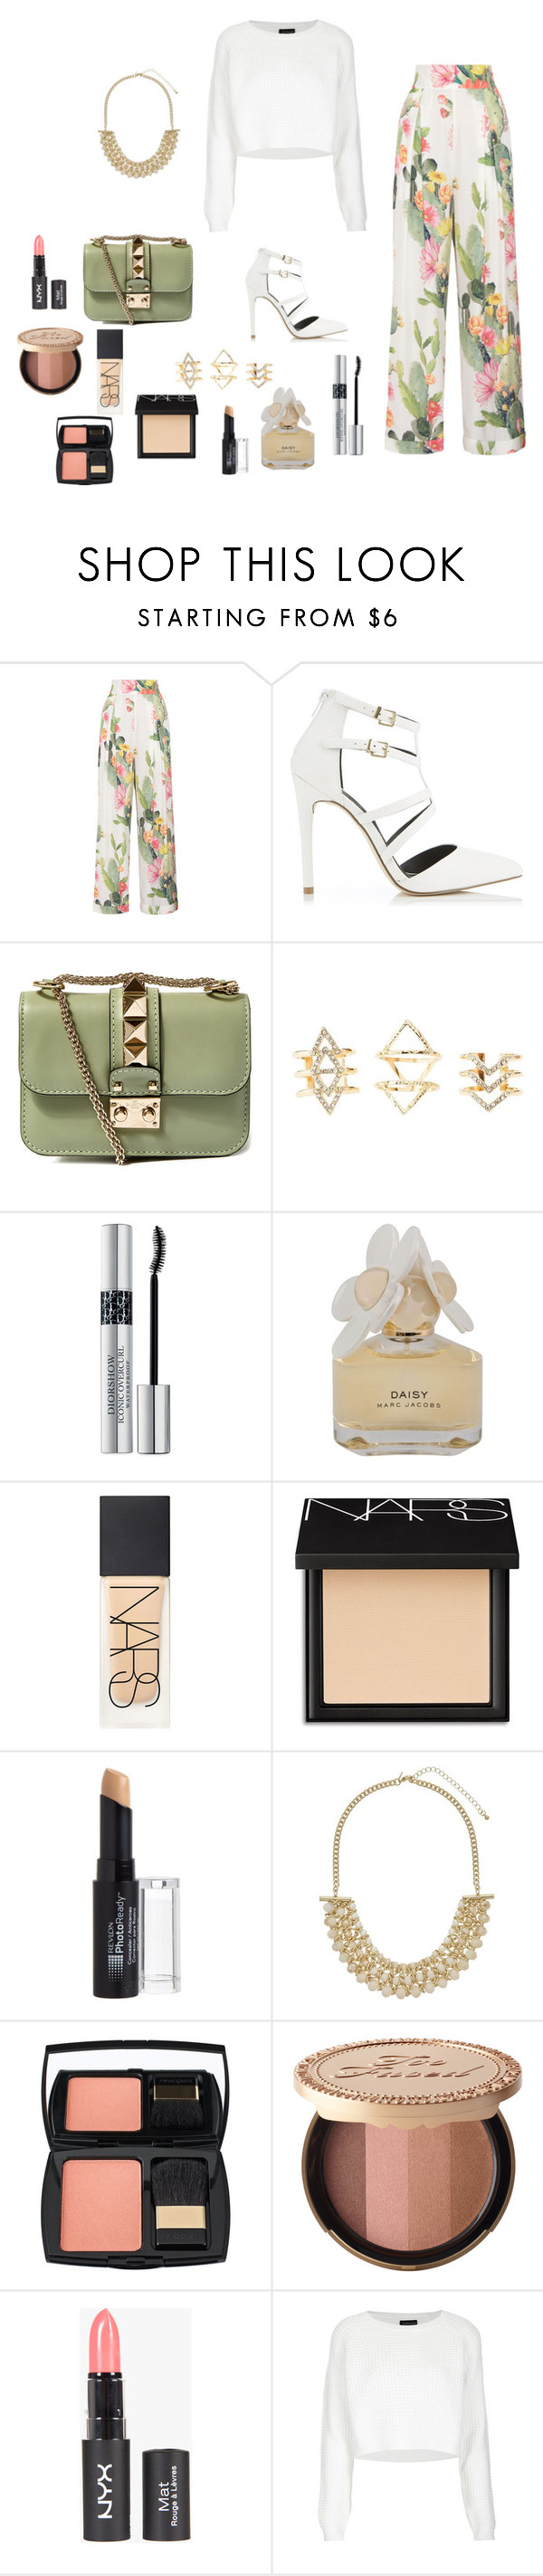 """""""M"""" by butnotperfect ❤ liked on Polyvore featuring Matthew Williamson, Miss Selfridge, Valentino, Charlotte Russe, Christian Dior, Marc by Marc Jacobs, NARS Cosmetics, Revlon, Lancôme and Too Faced Cosmetics"""